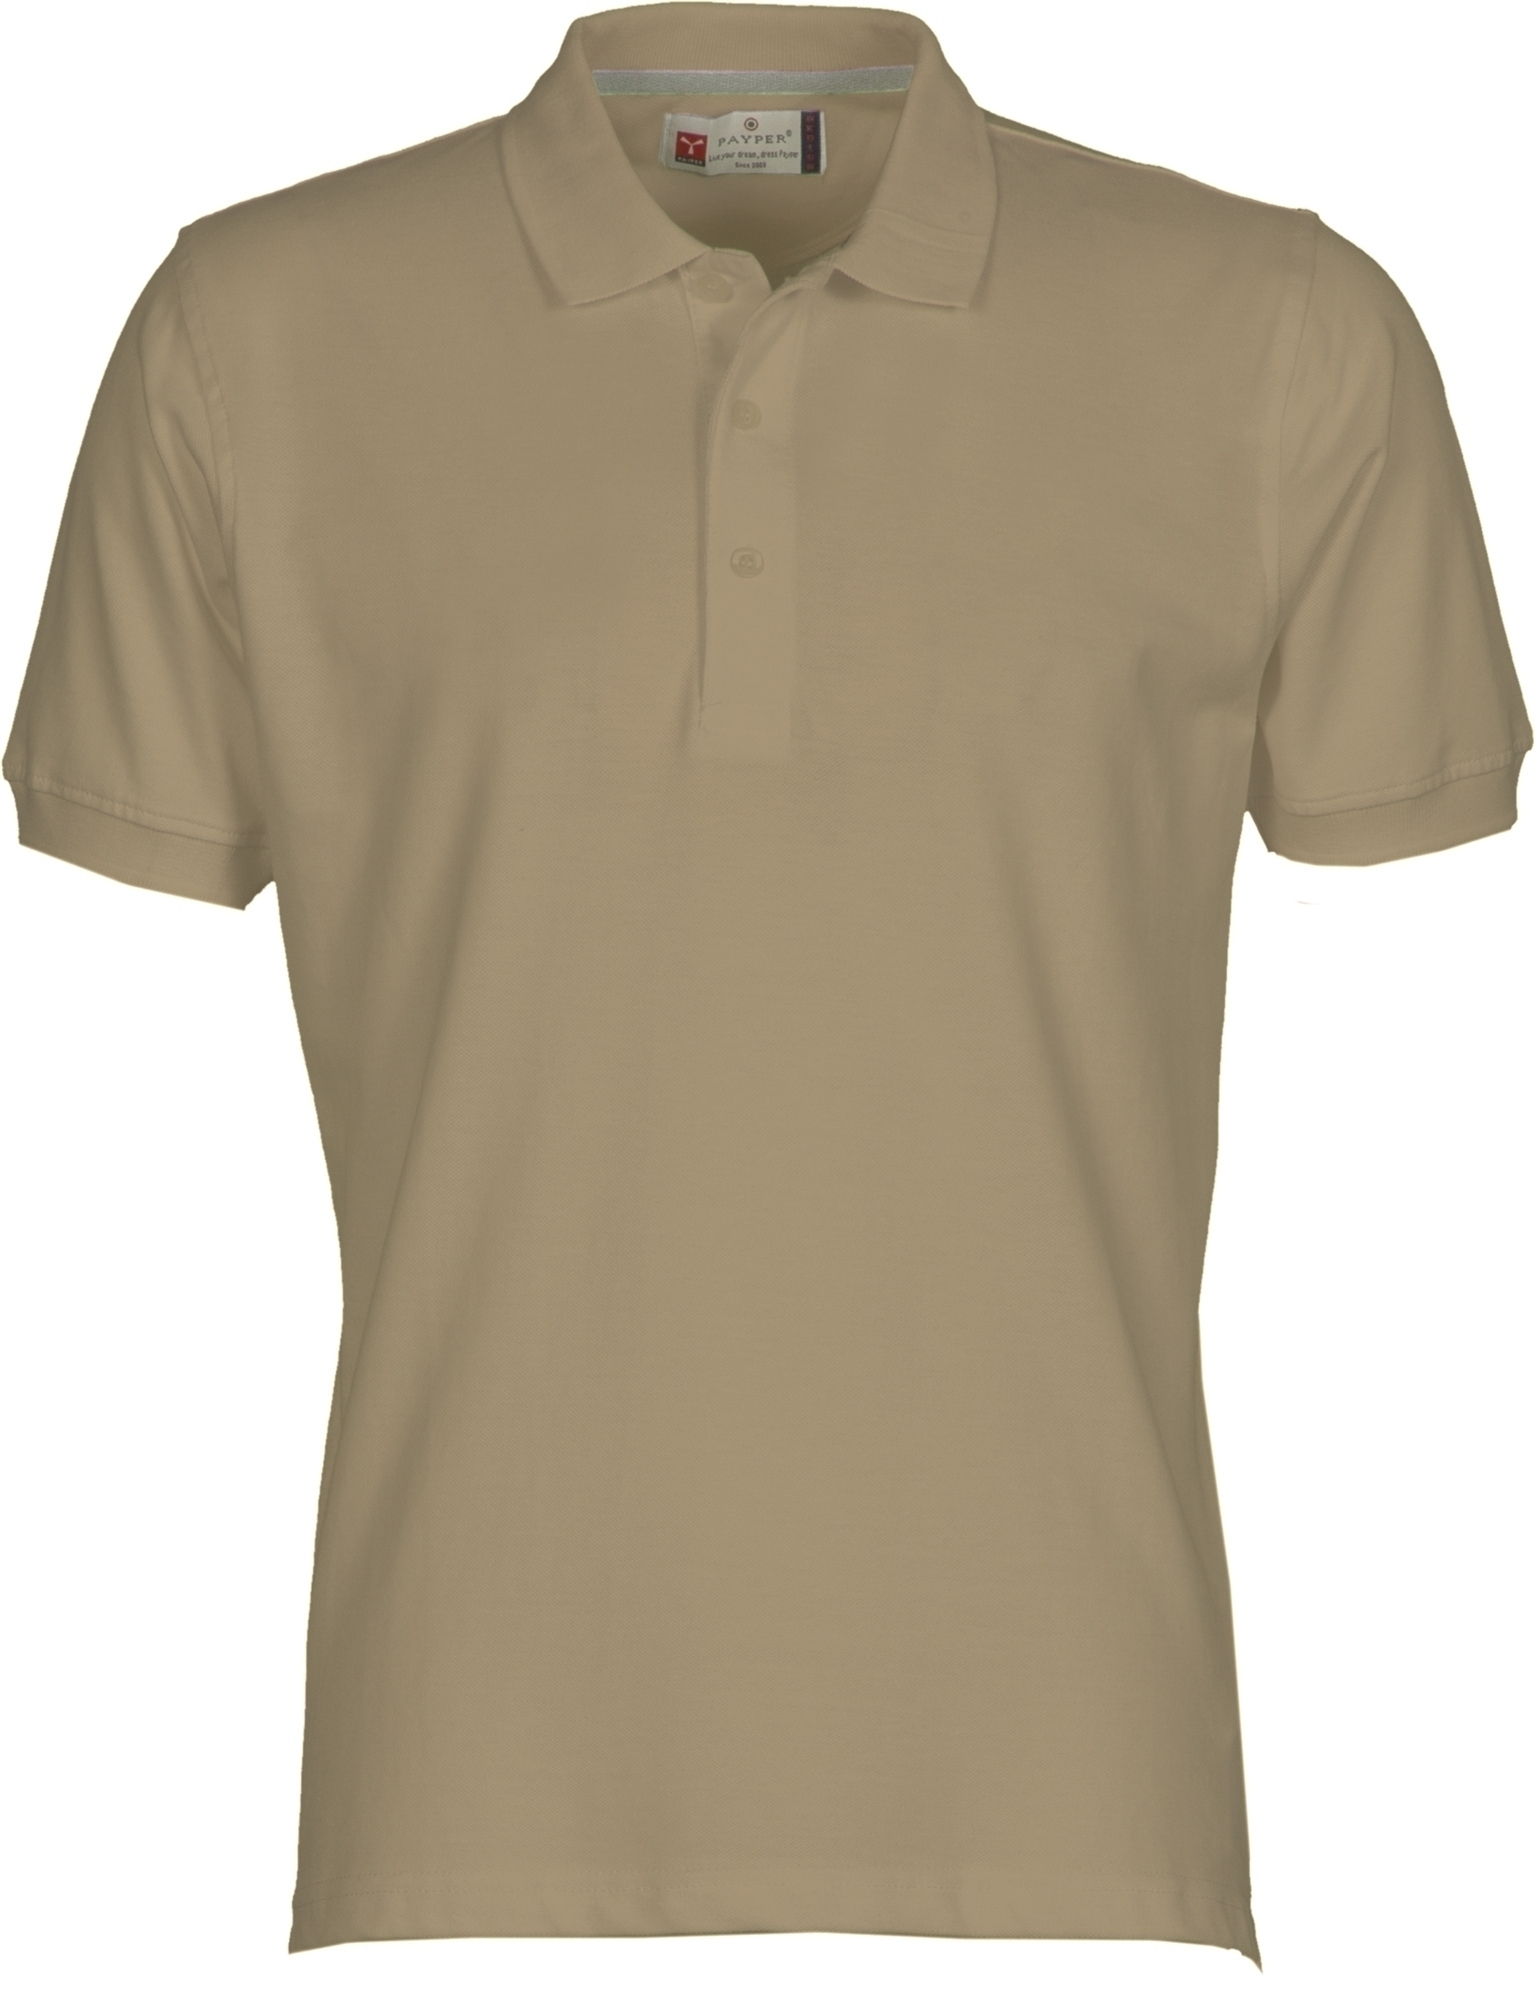 Polo Deluxe Caf Beige